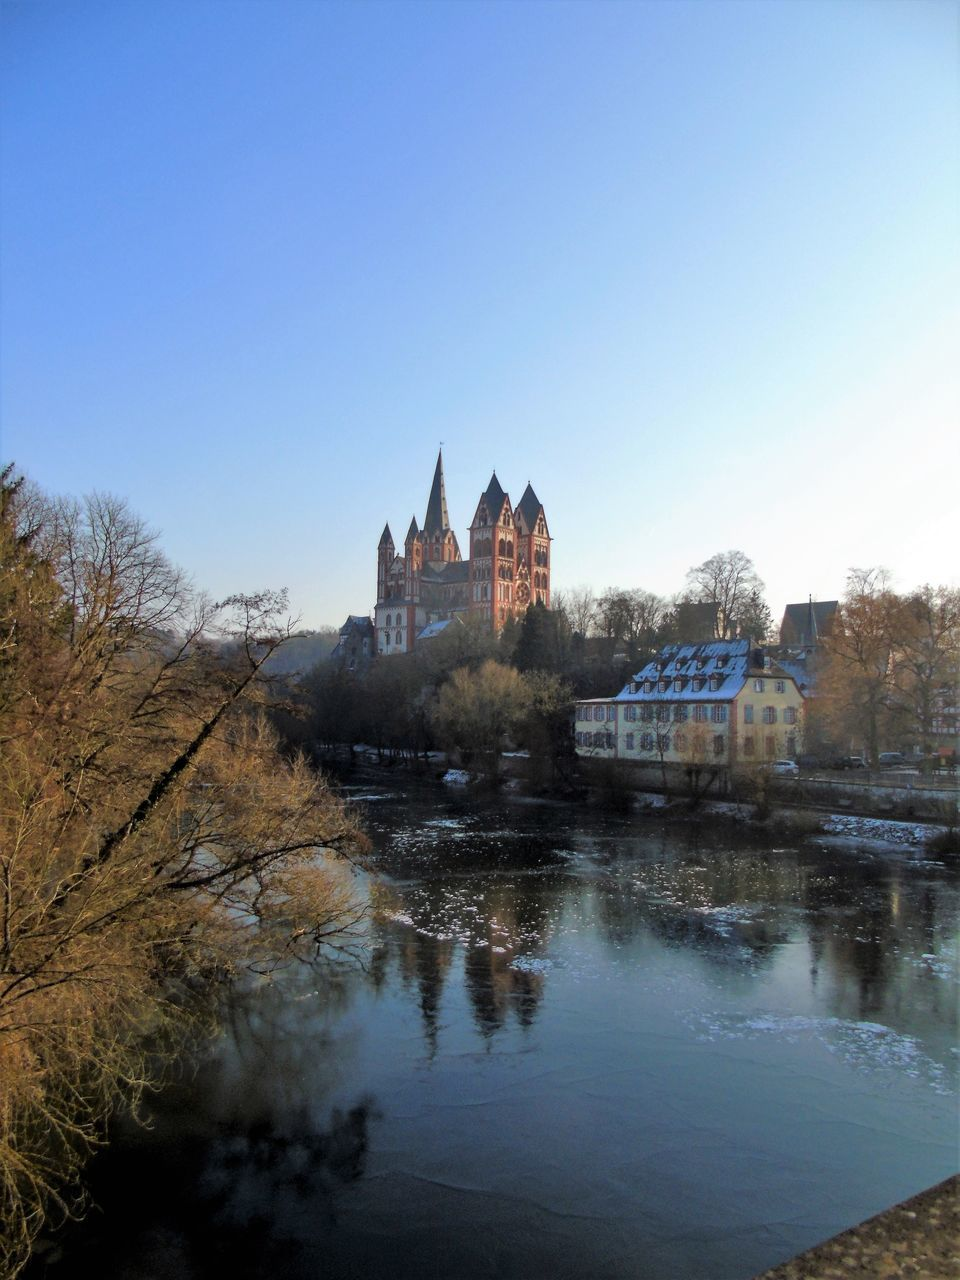 architecture, built structure, river, building exterior, water, no people, bridge - man made structure, outdoors, castle, clear sky, day, tree, nature, city, sky